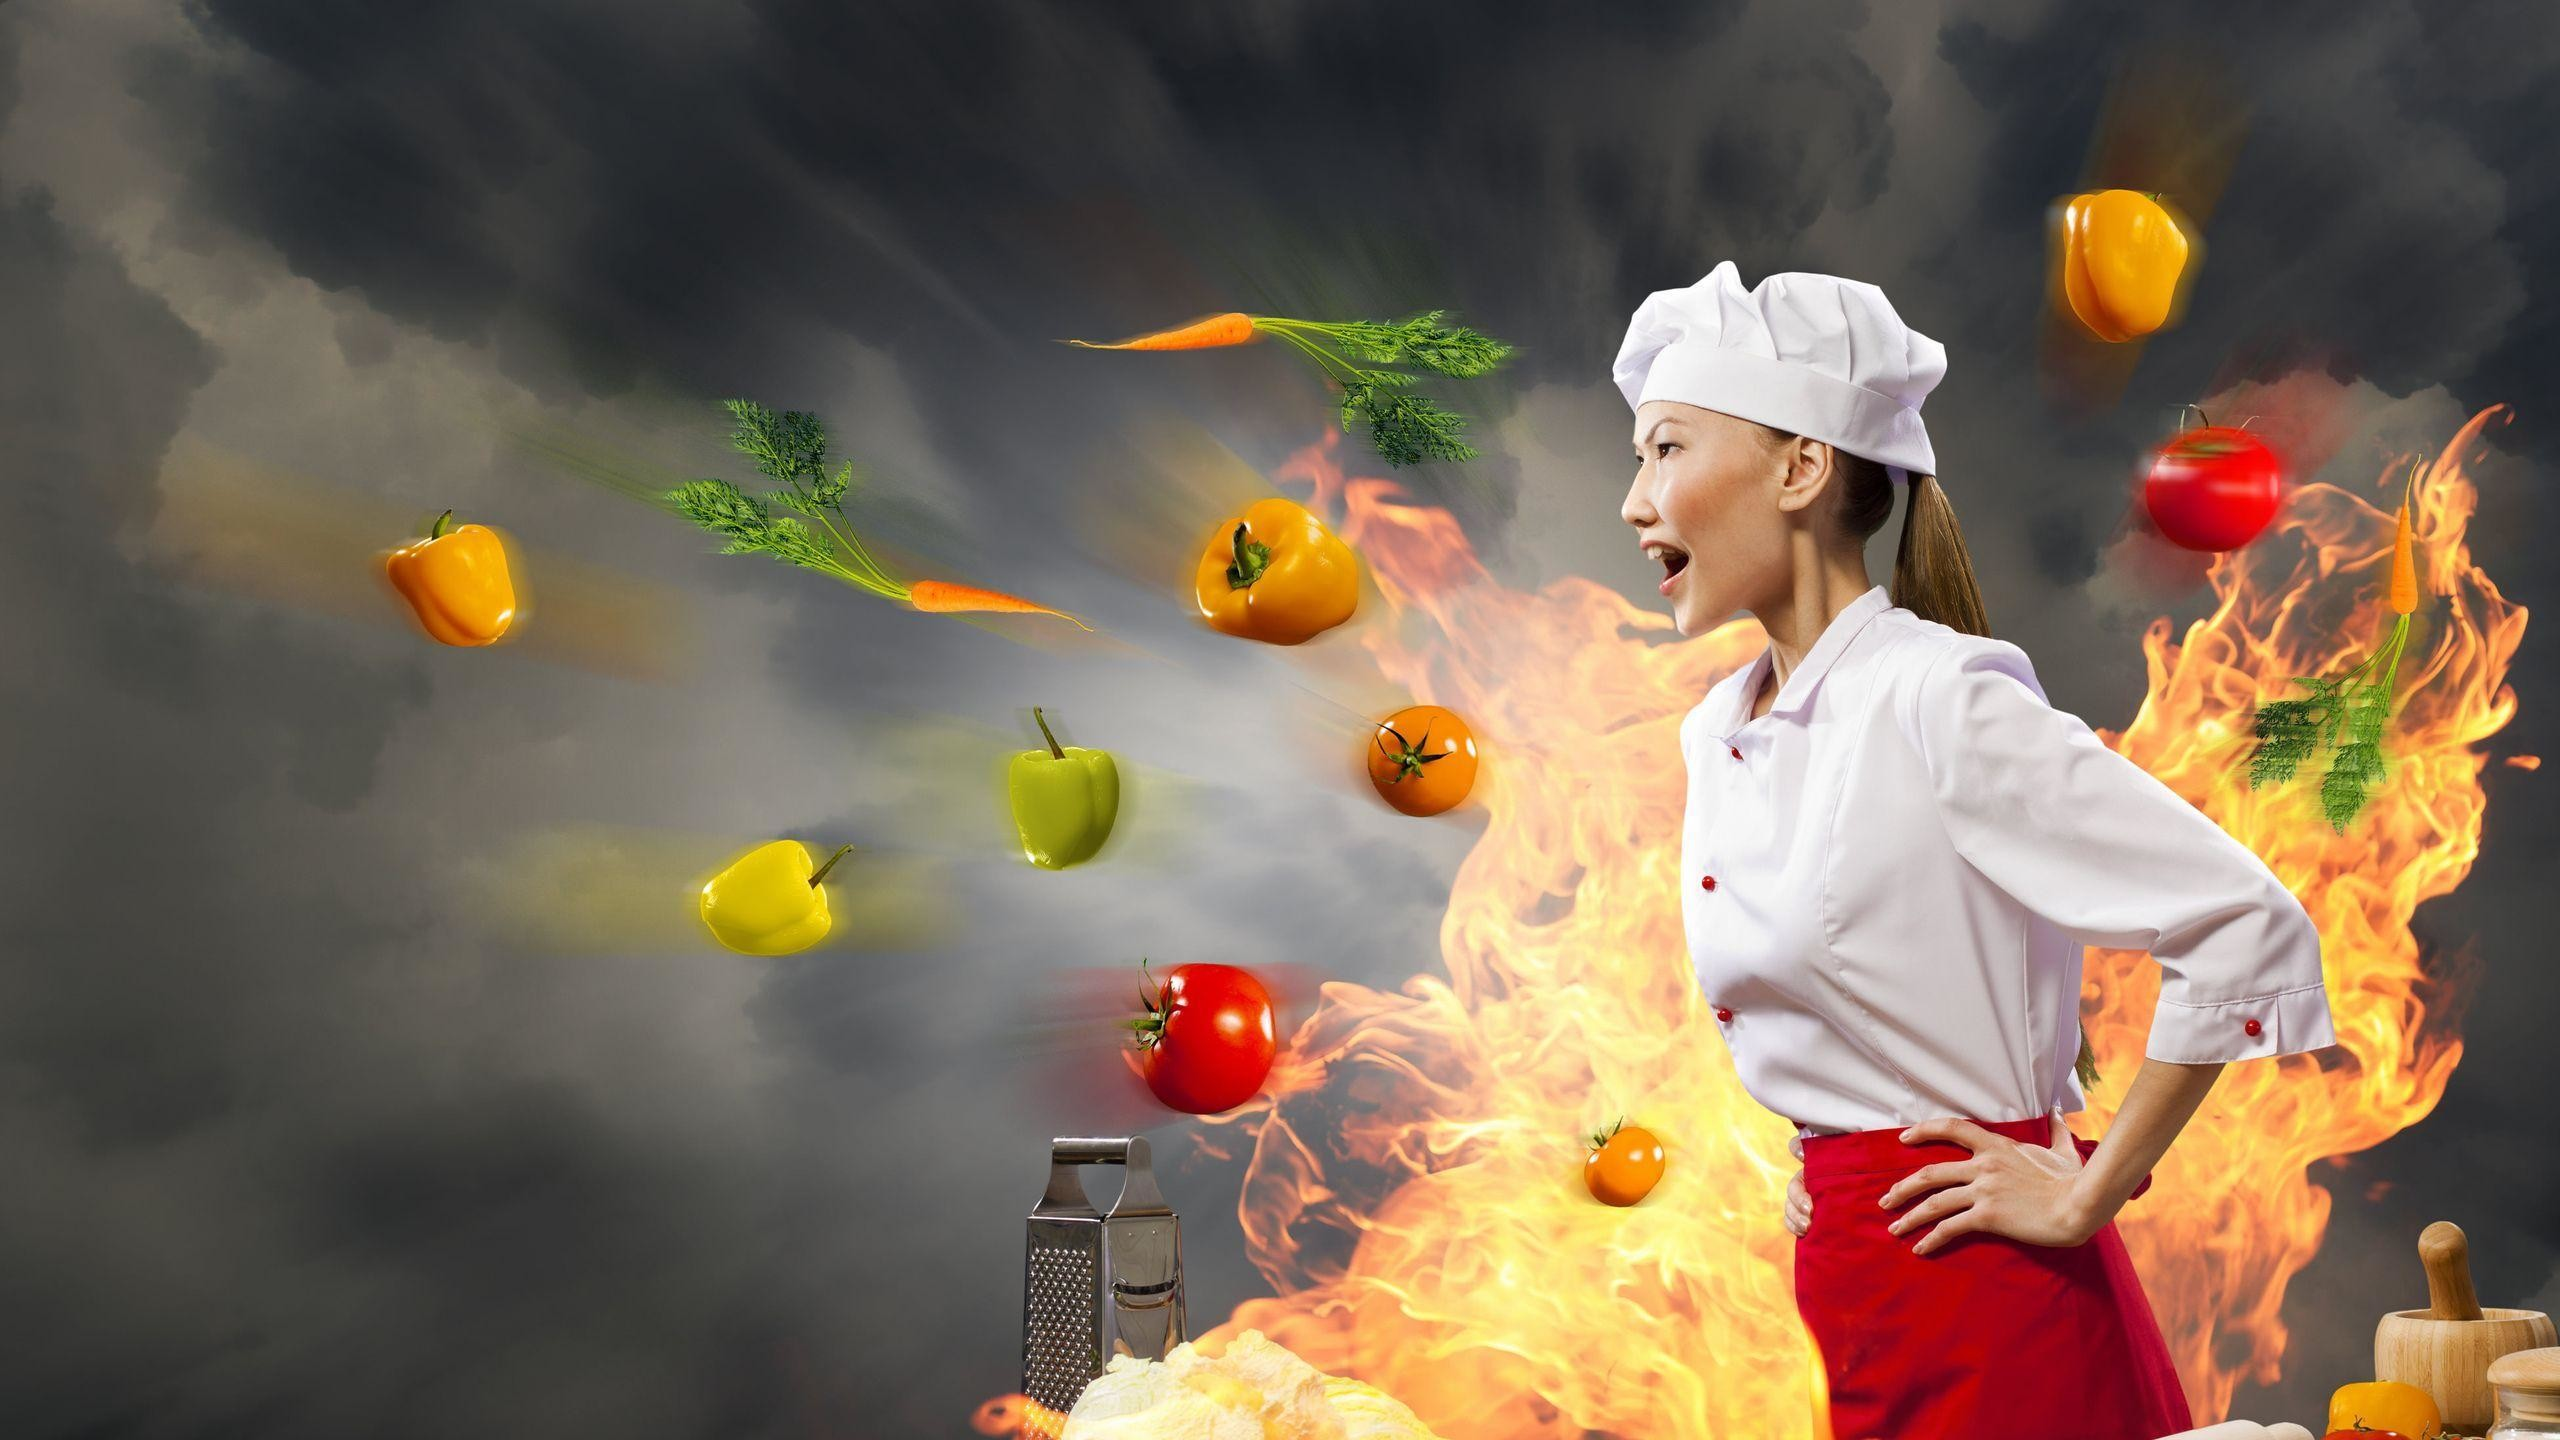 Chef Wallpapers 57 Pictures